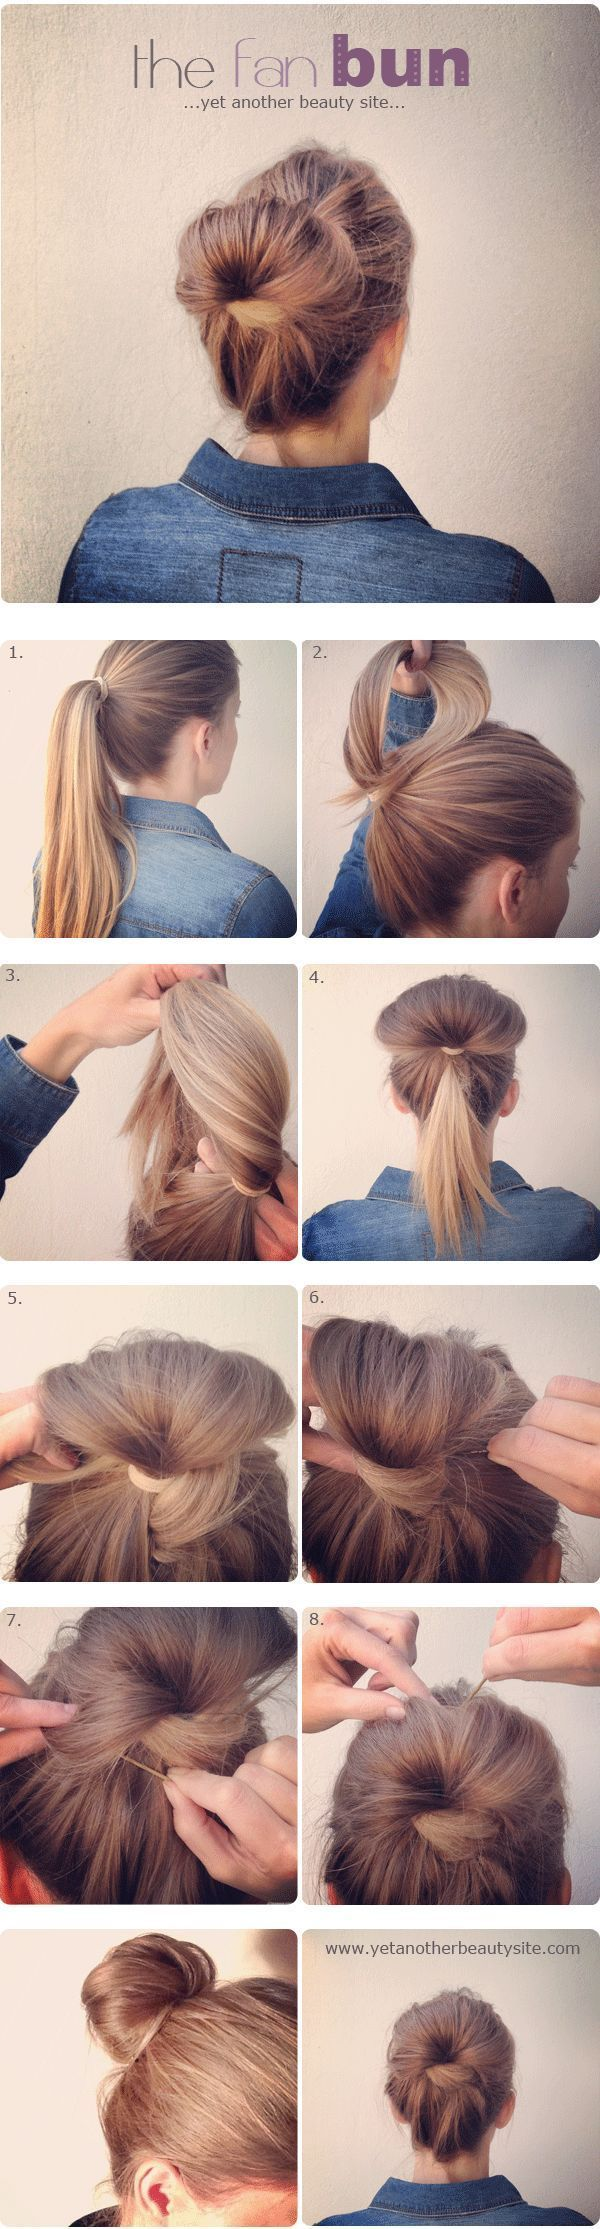 Quick easy updo easyhairstylesforwork easy hairstyles